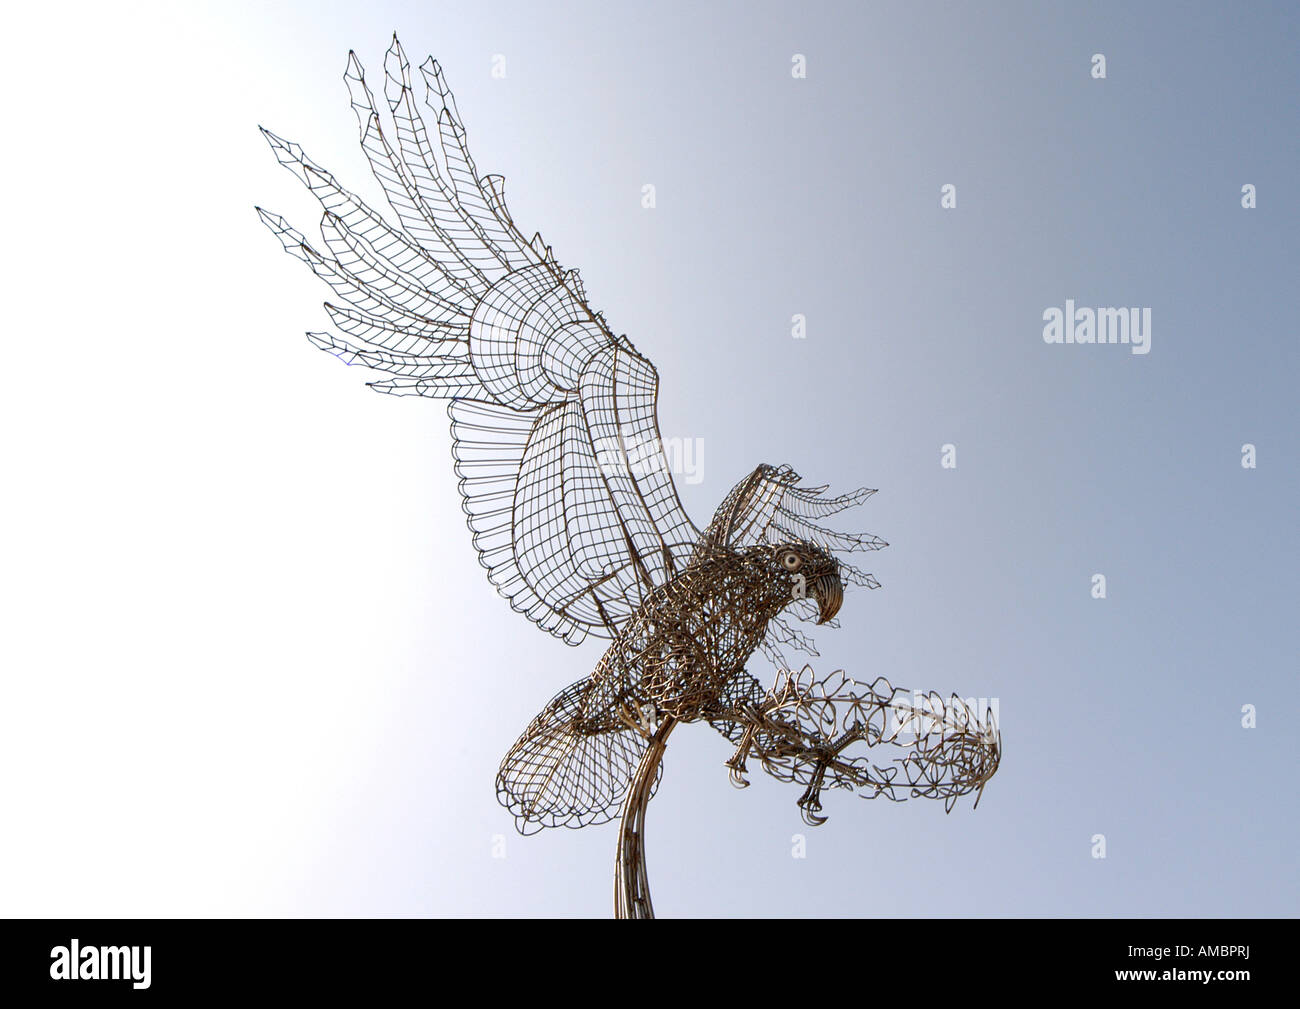 Wire Sculpture Stock Photos & Wire Sculpture Stock Images - Alamy